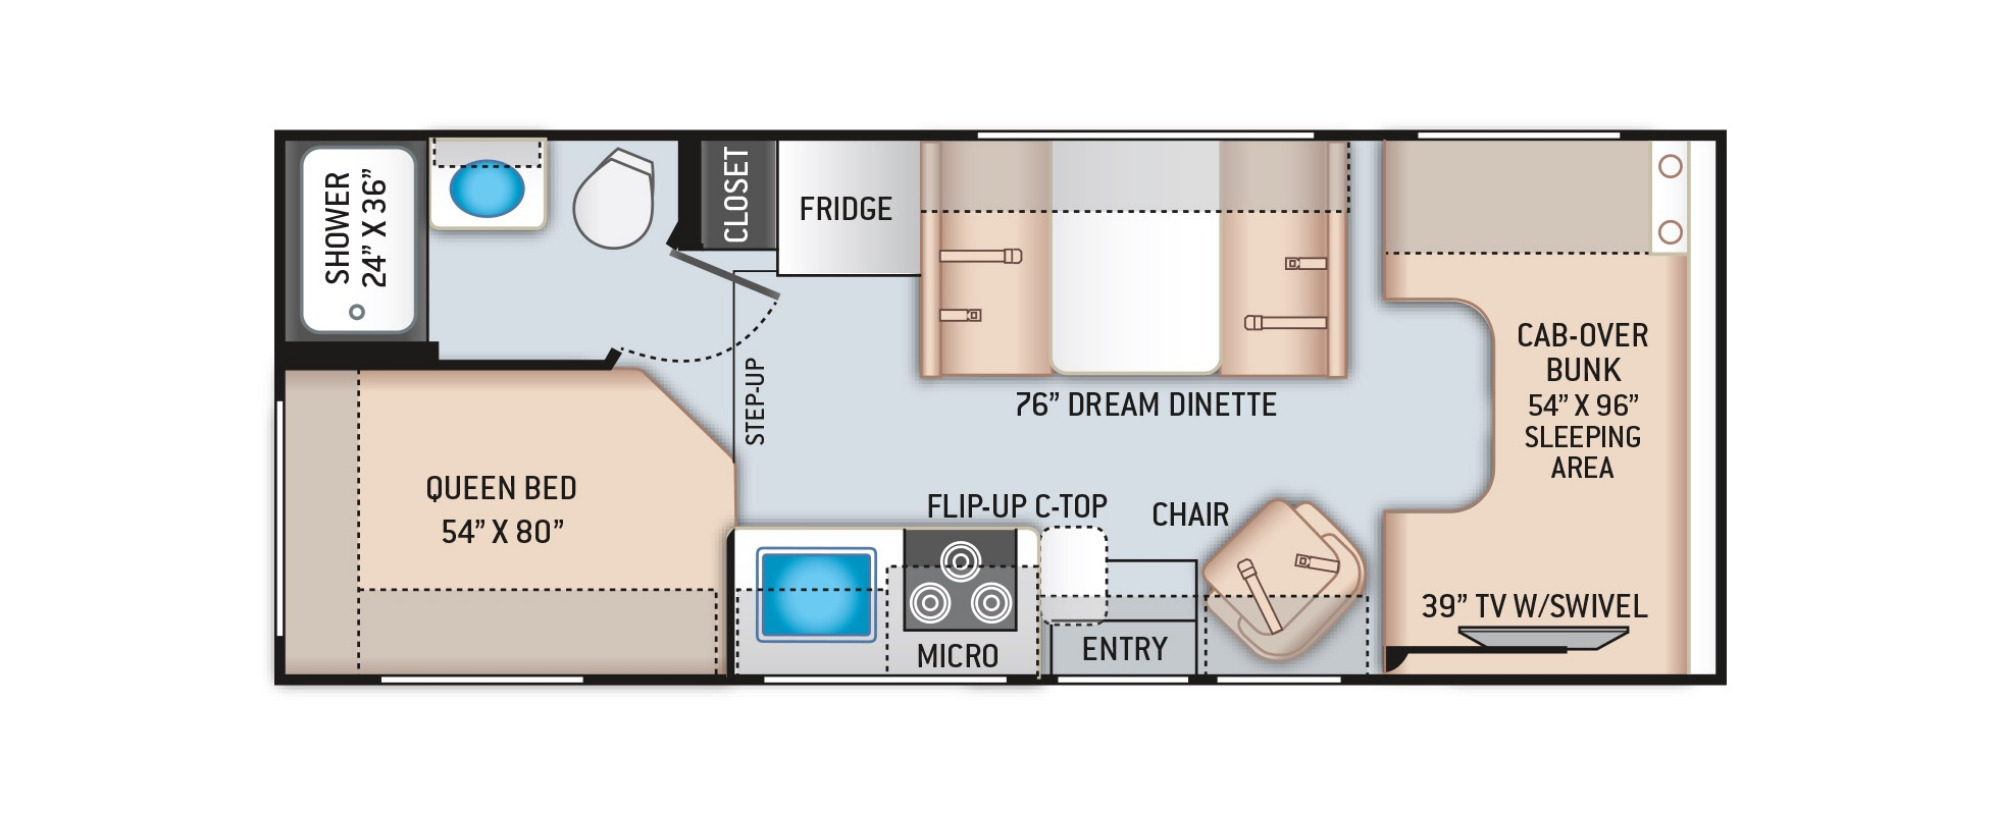 View Floor Plan for 2022 THOR COLEMAN 23CMF